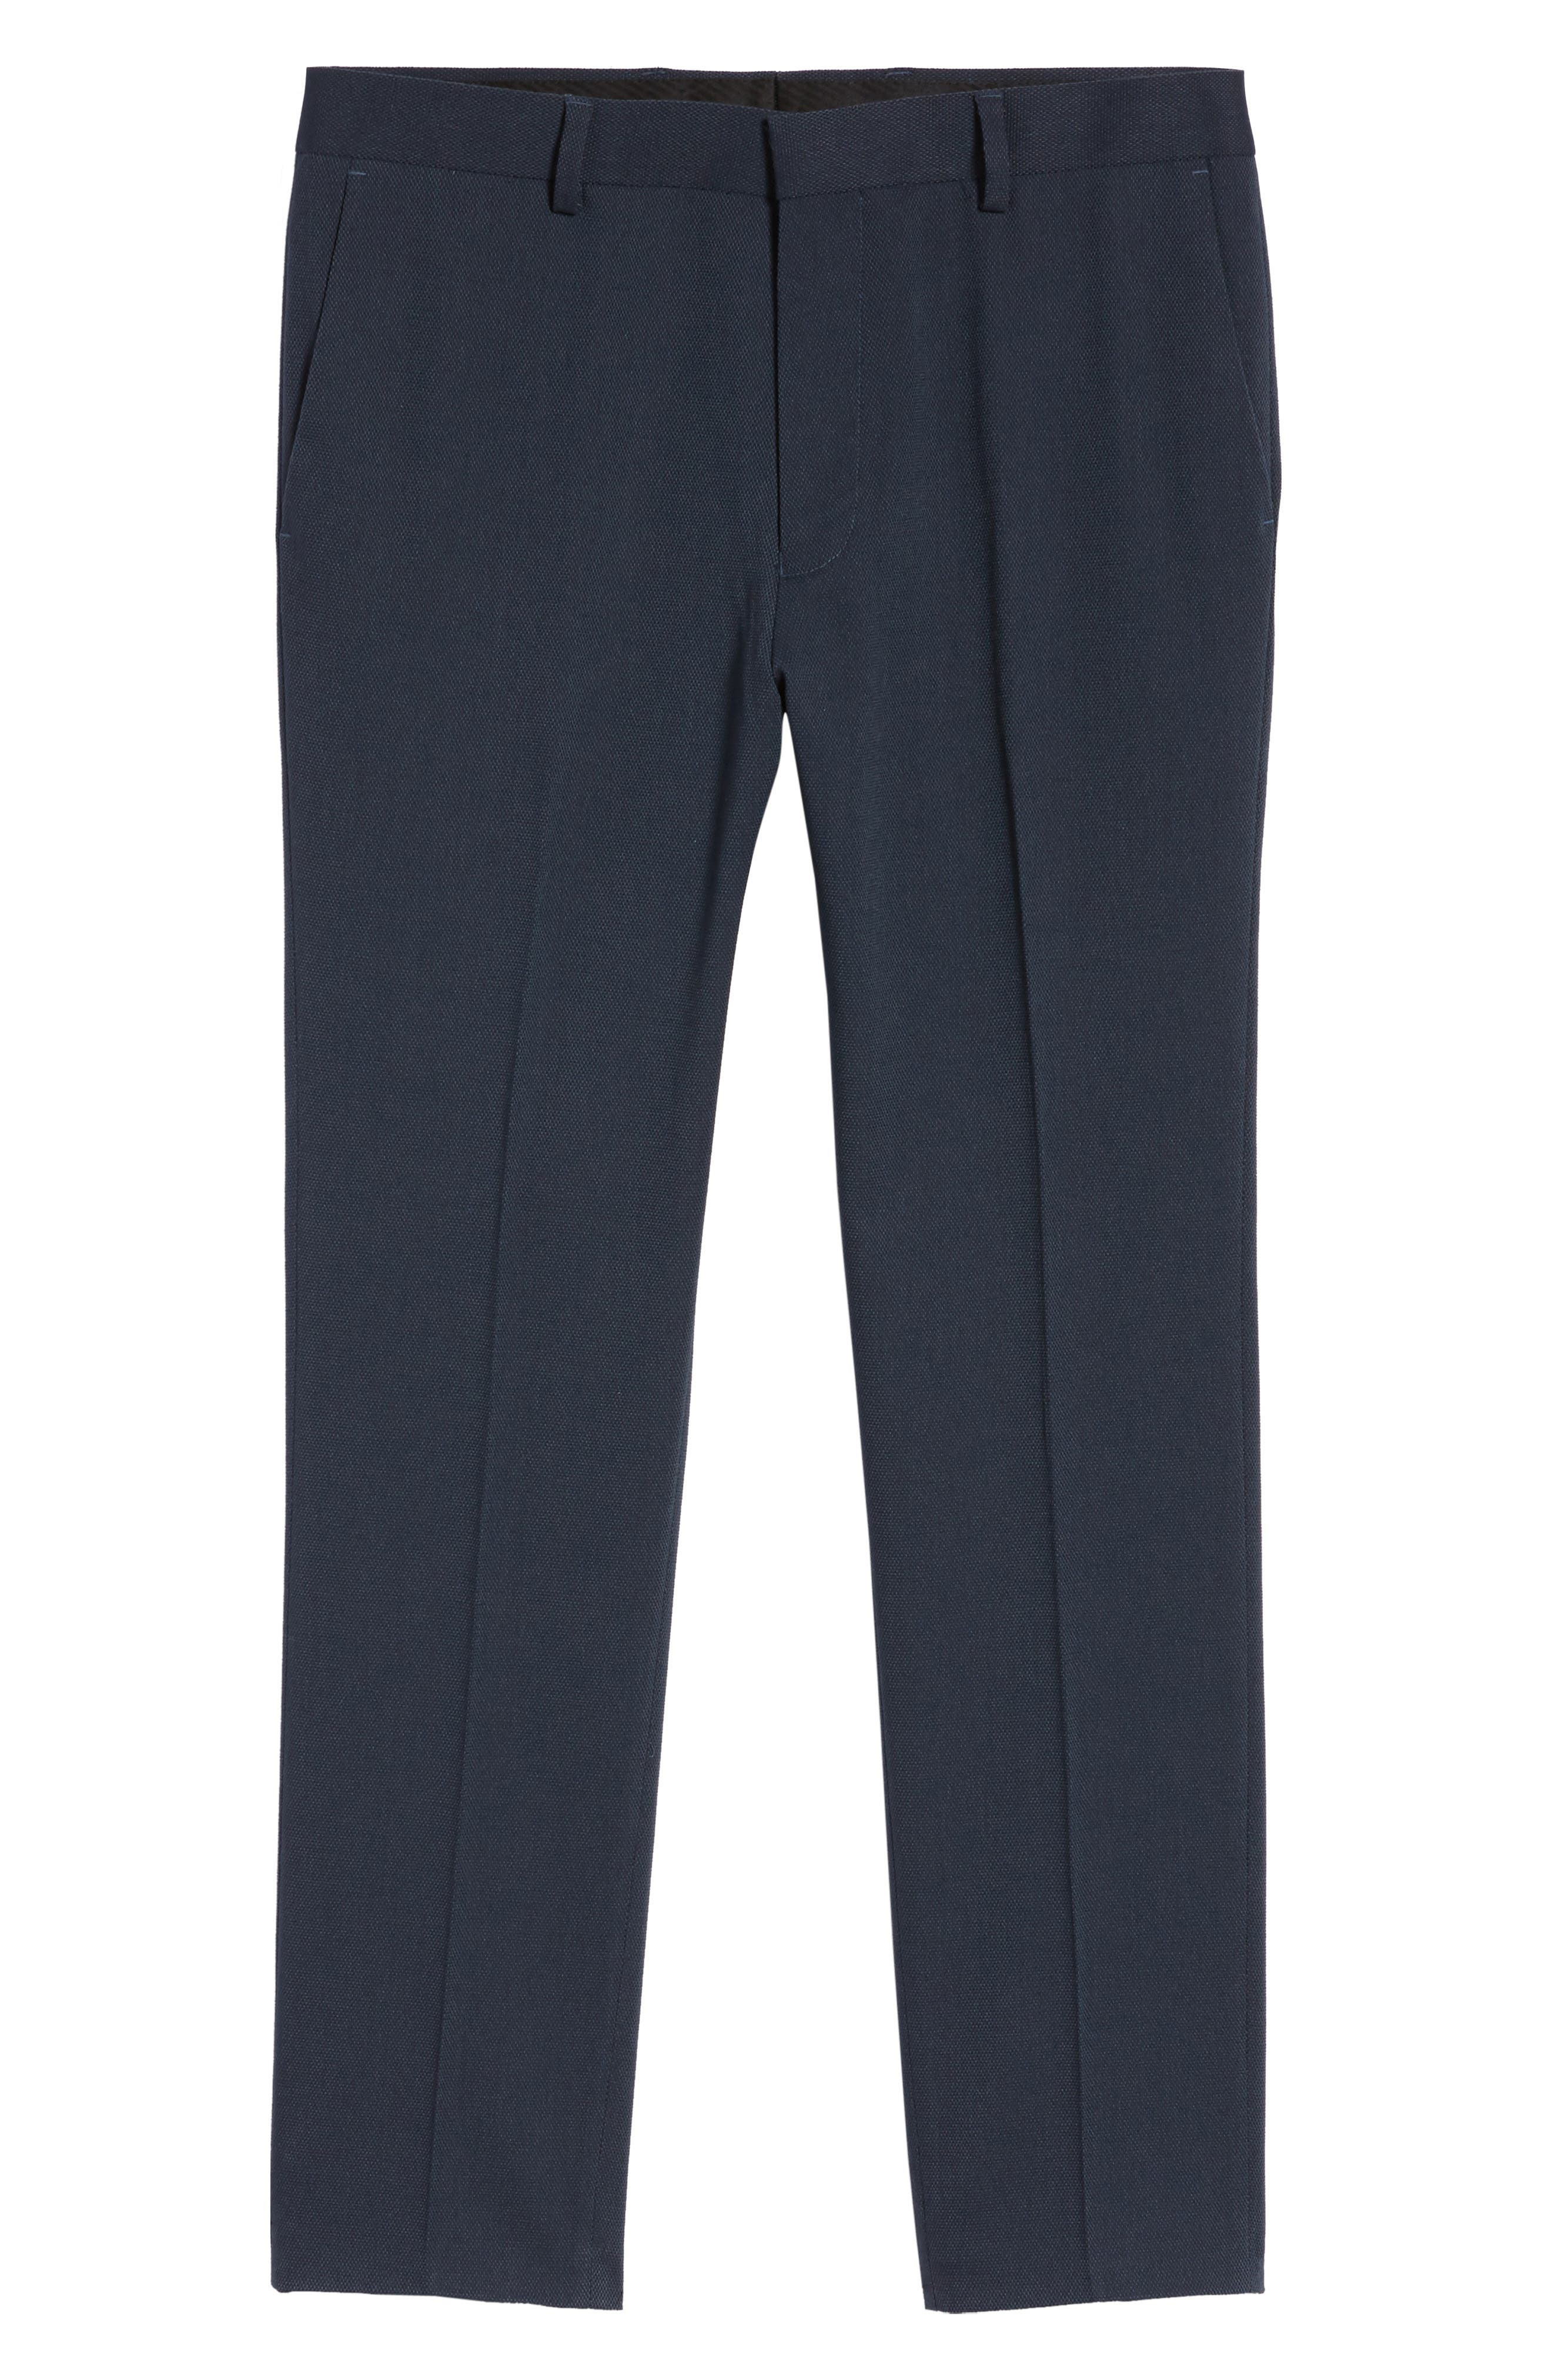 Skinny Fit Como Trousers,                             Alternate thumbnail 6, color,                             420